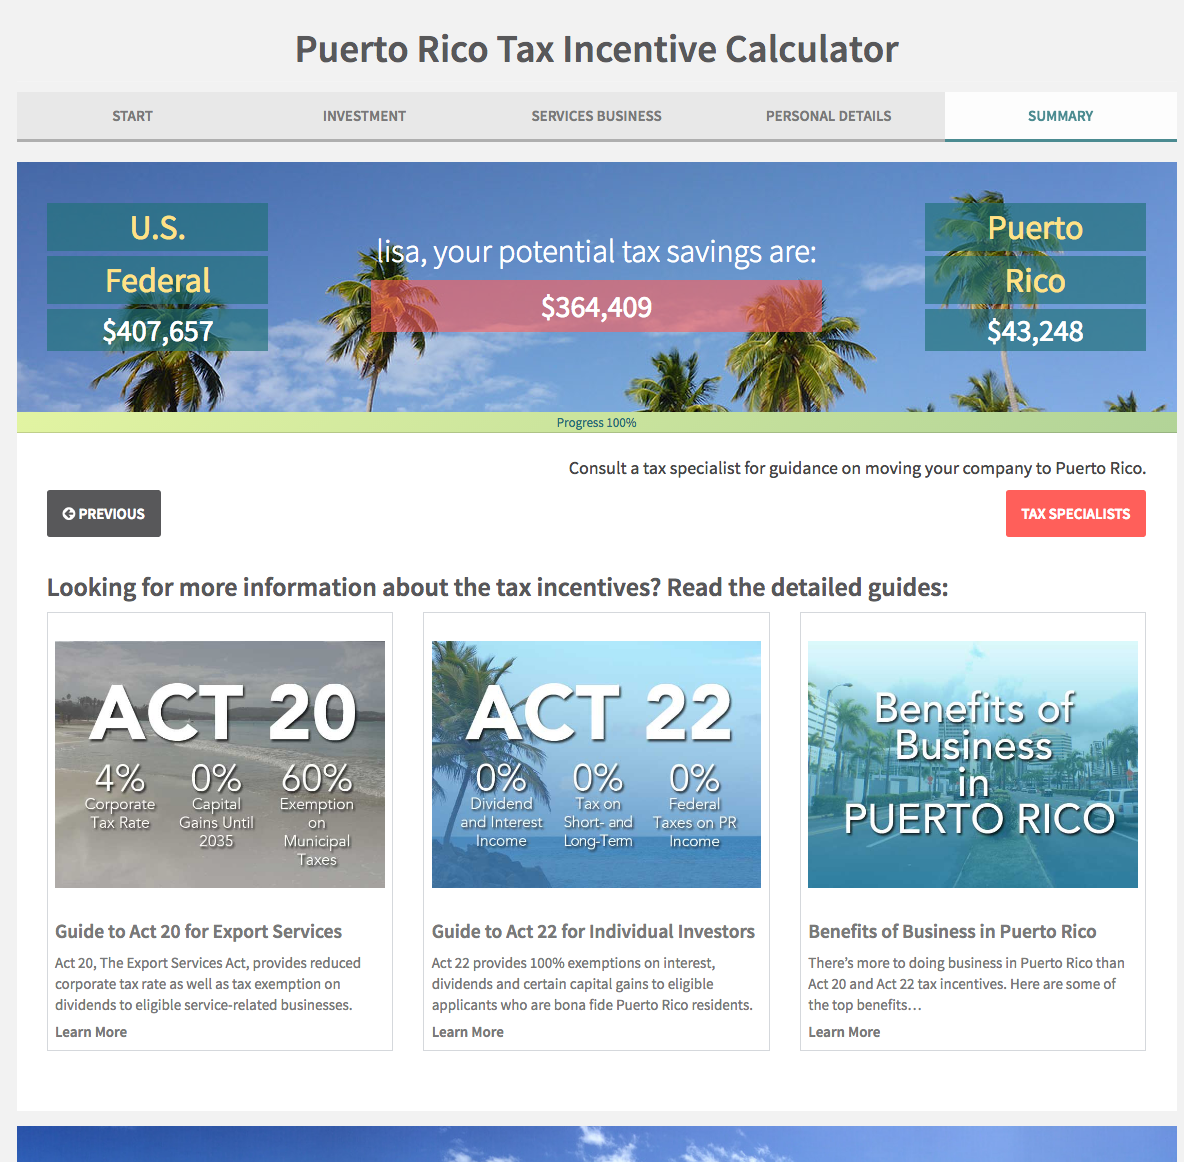 New Puerto Rico Act 20 & 22 Tax Incentive Calculator for